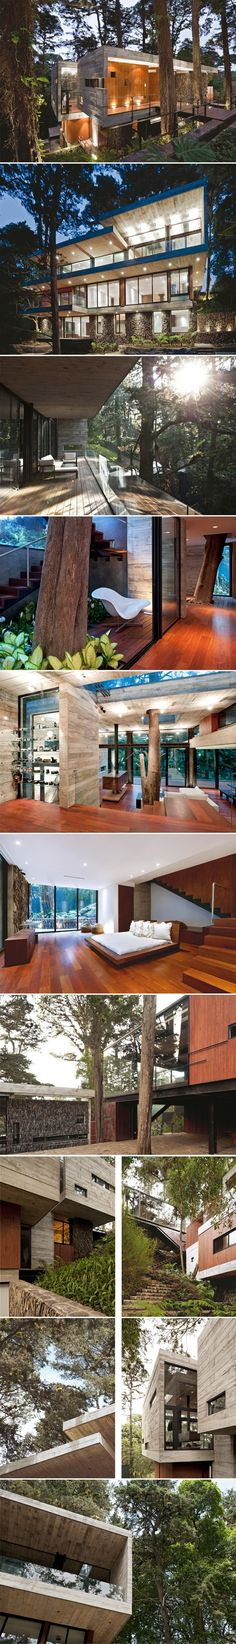 1000 images about modern house on pinterest architects. Black Bedroom Furniture Sets. Home Design Ideas